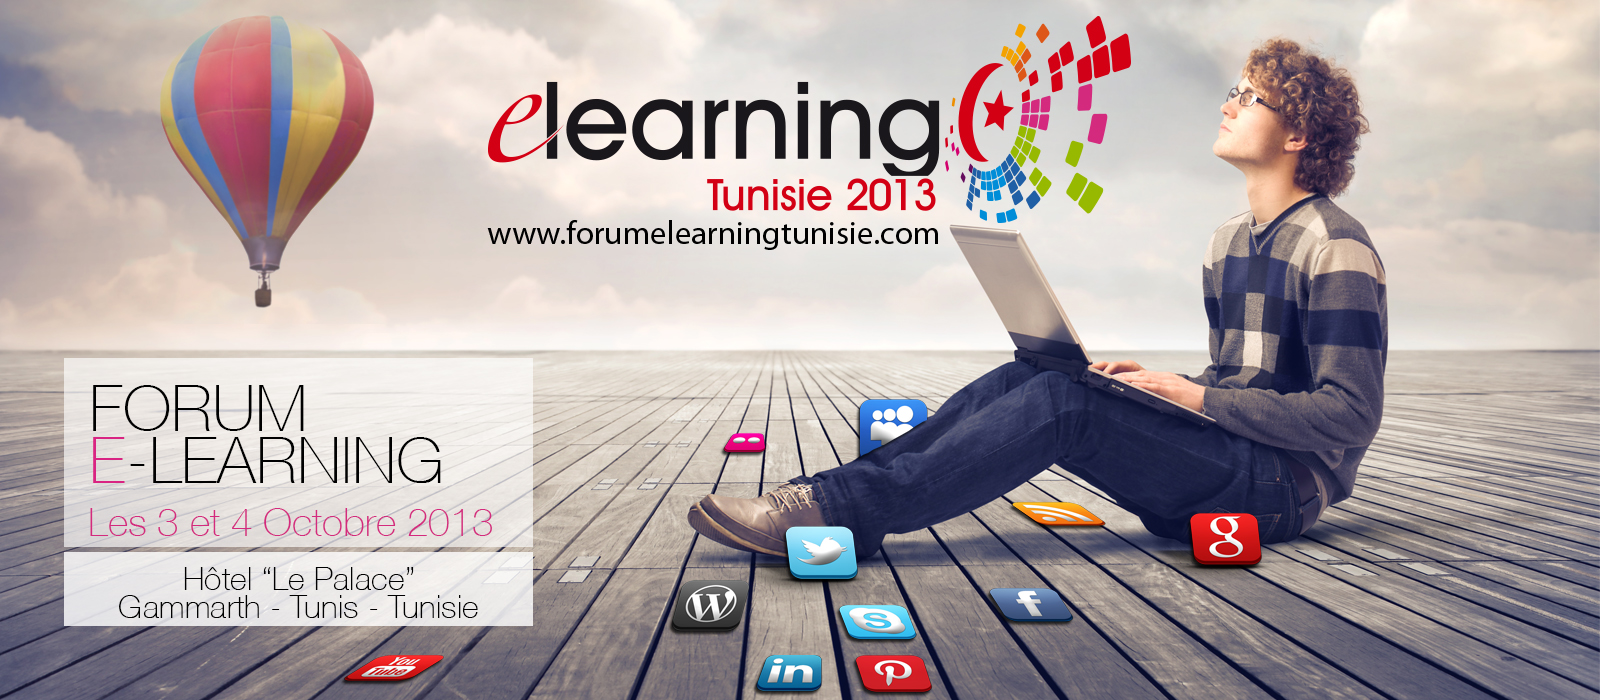 Forum E-learning 2013 Tunisie